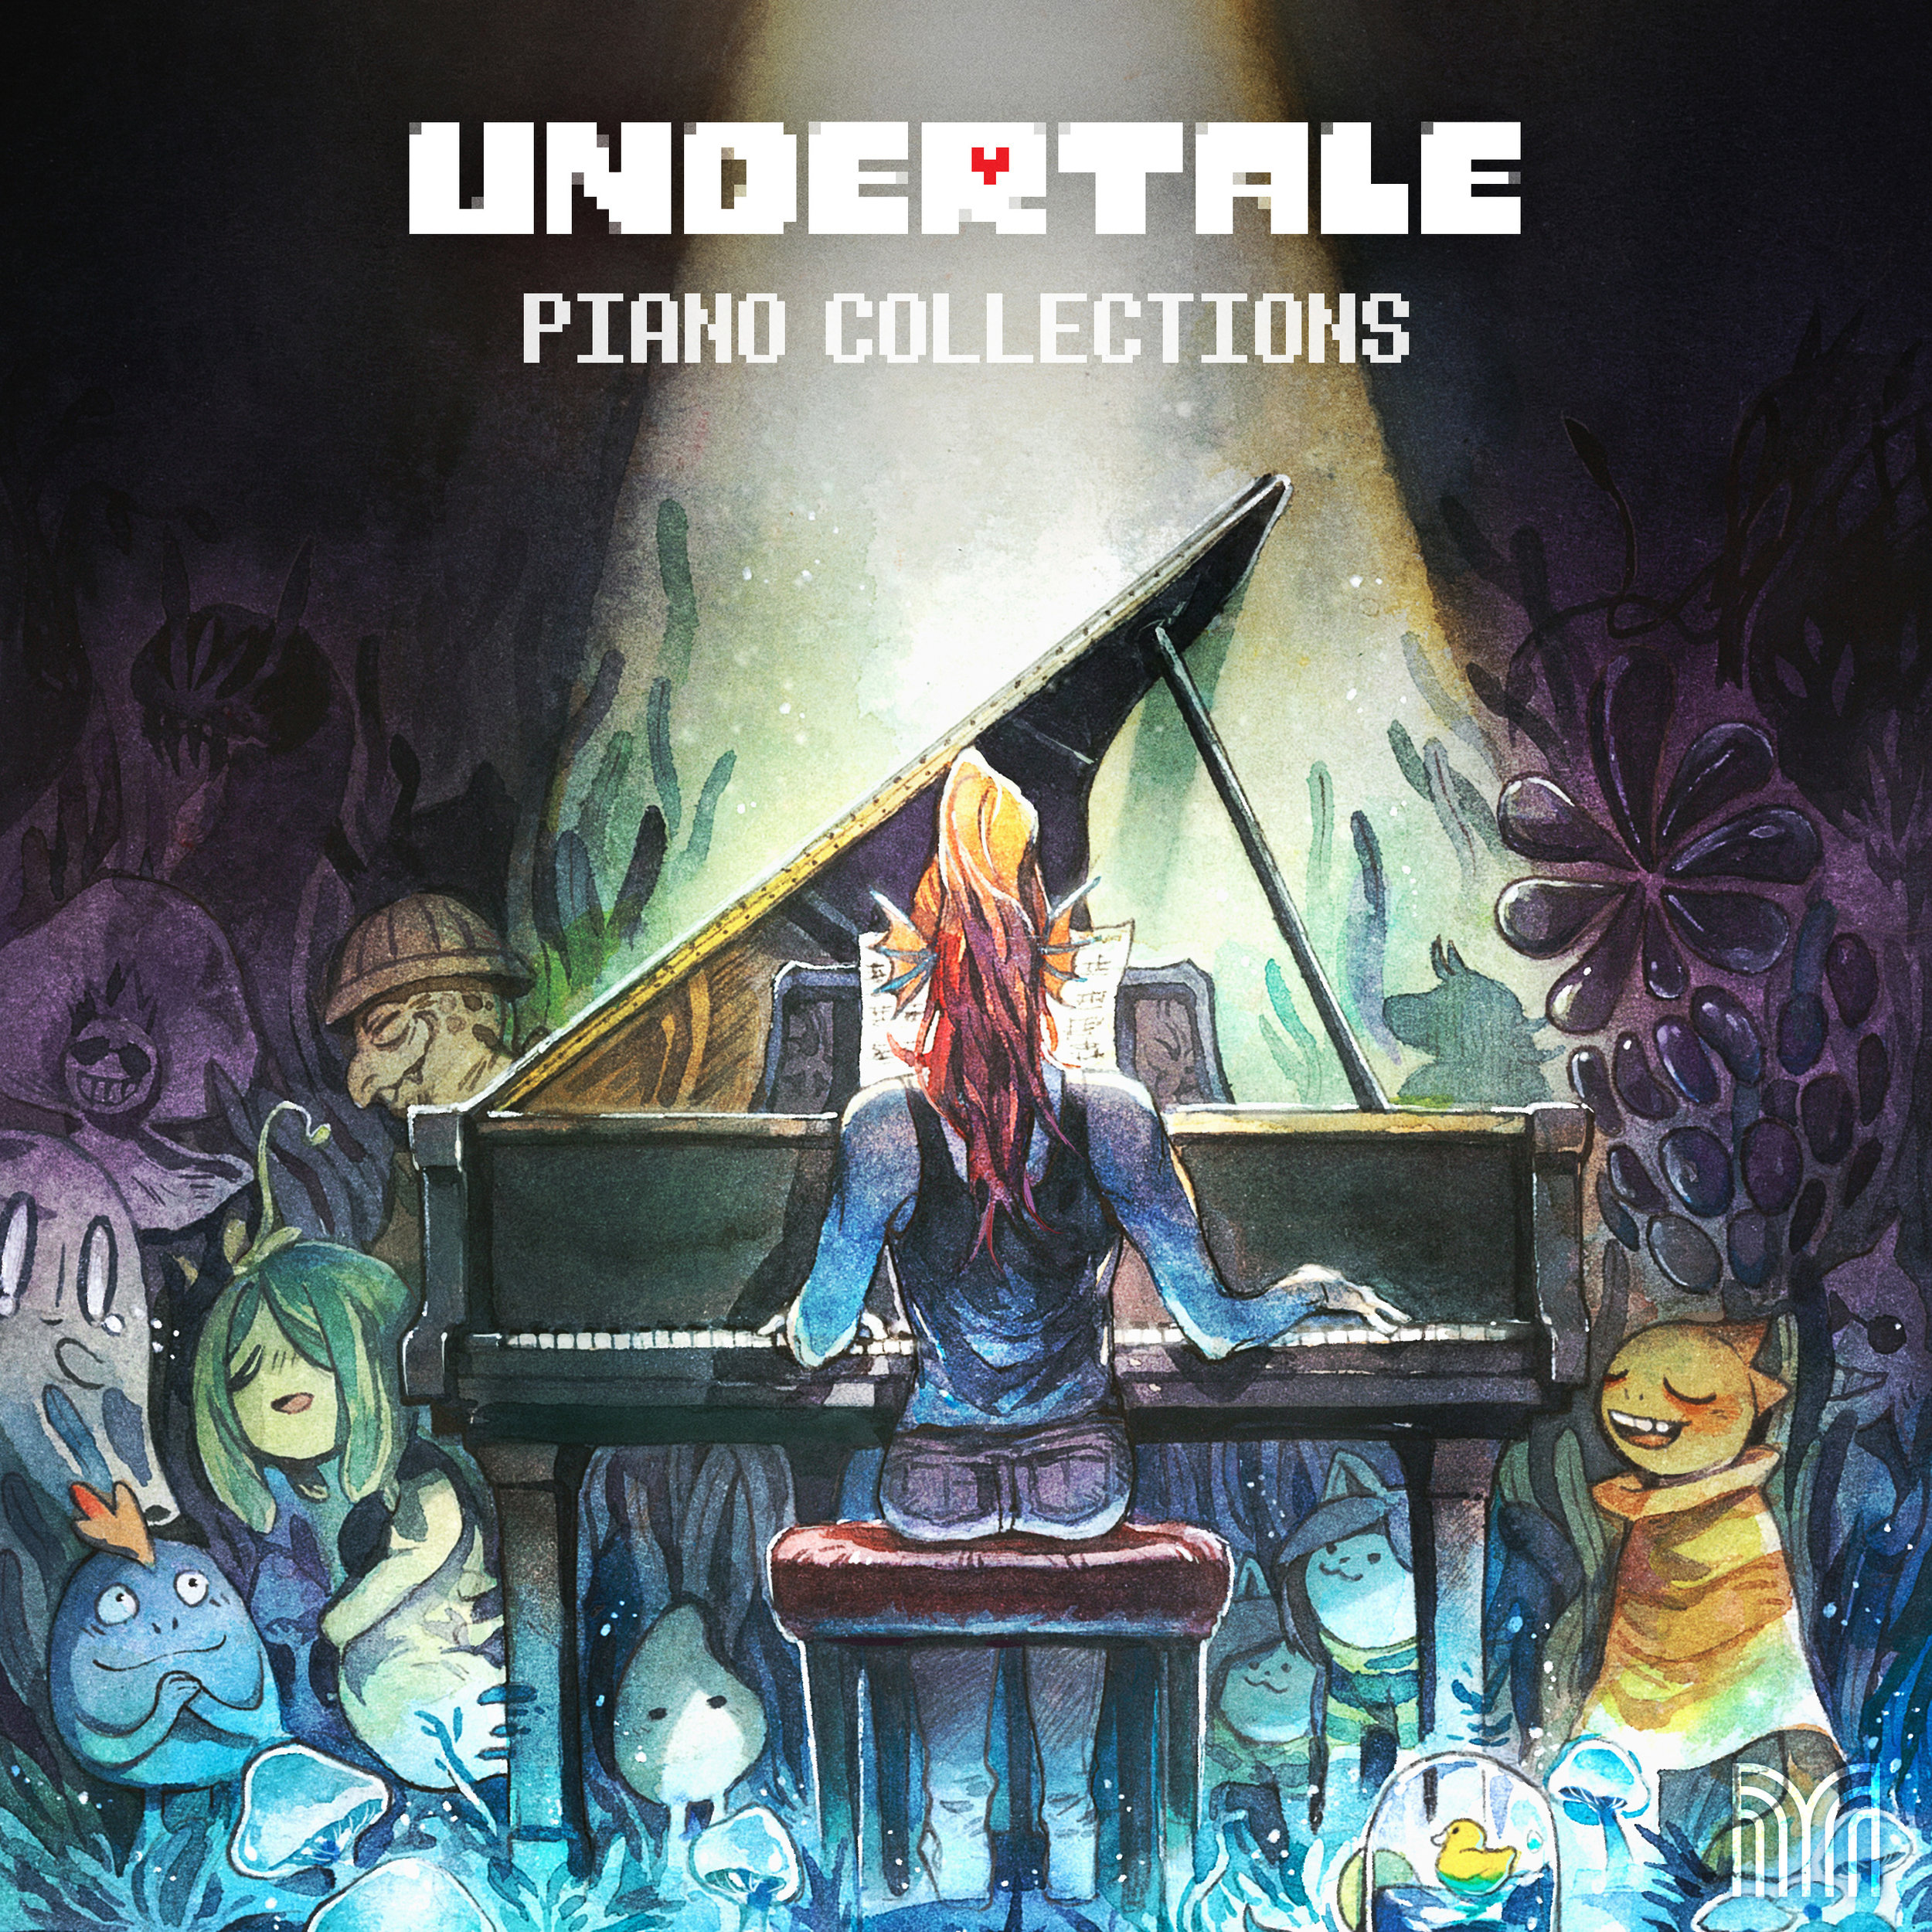 undertale-piano-collections-album-cover.jpg